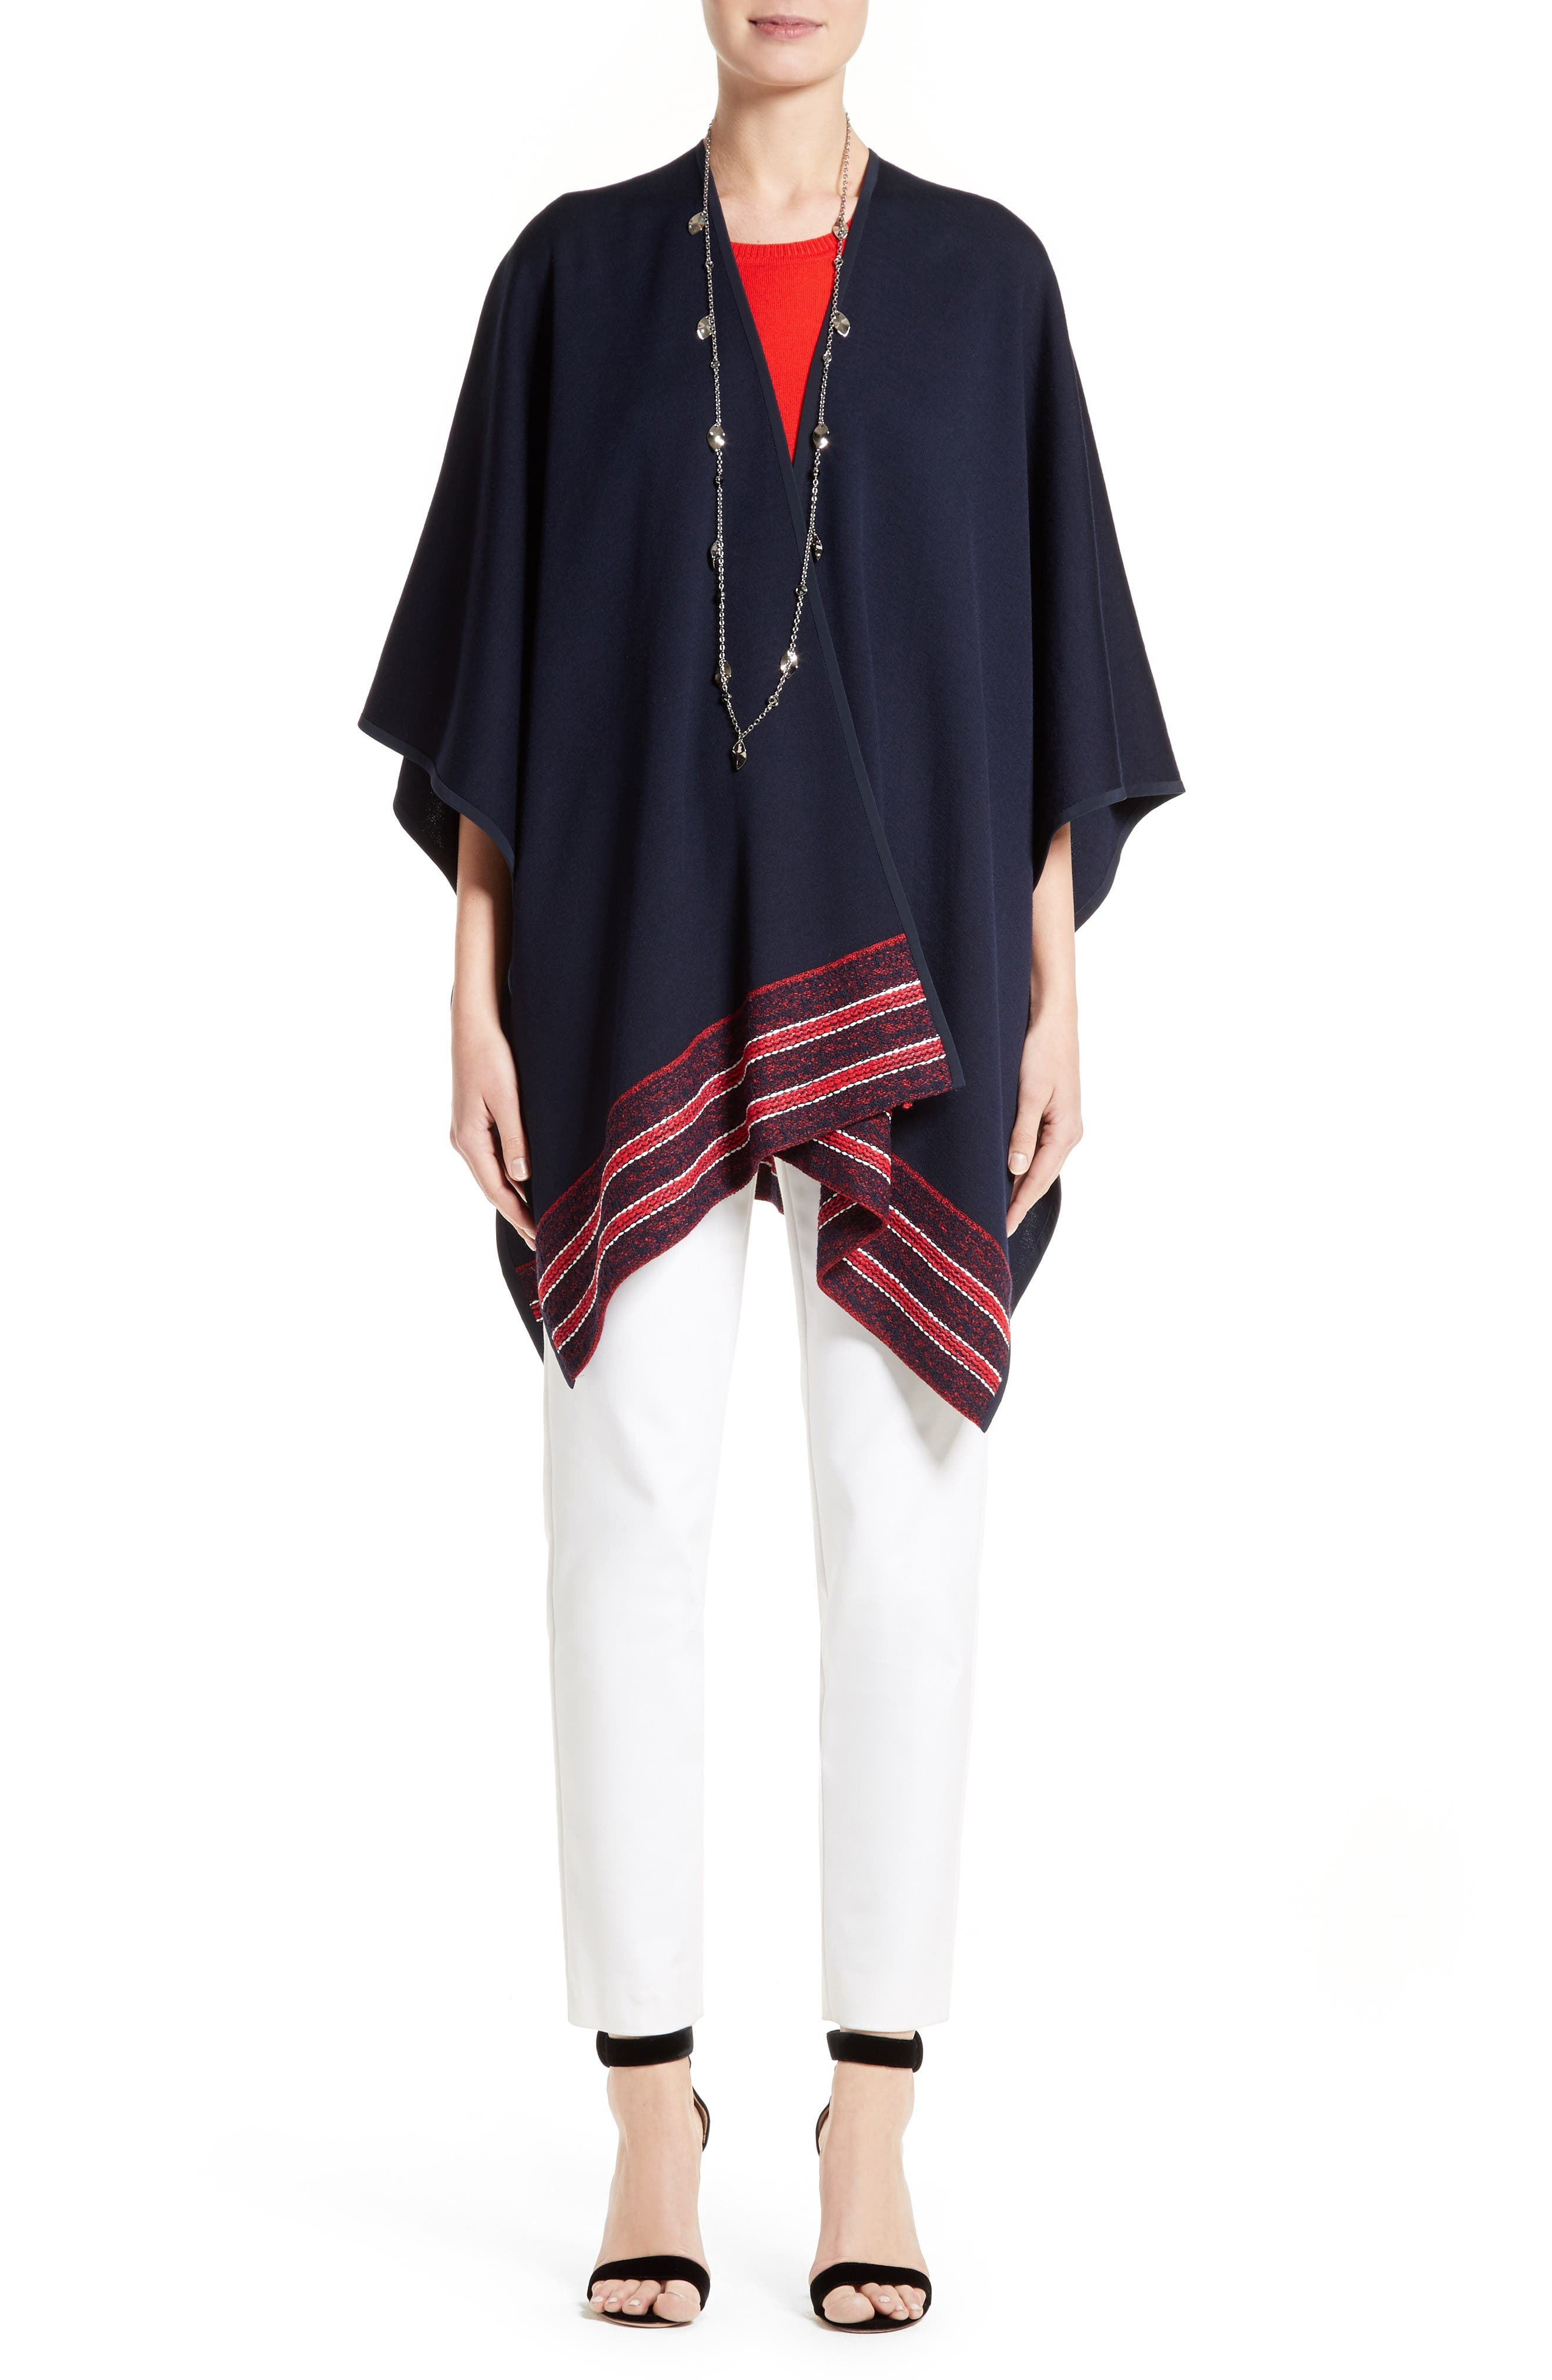 St. John Collection Wrap, Shell & Pants Outfit with Accessories